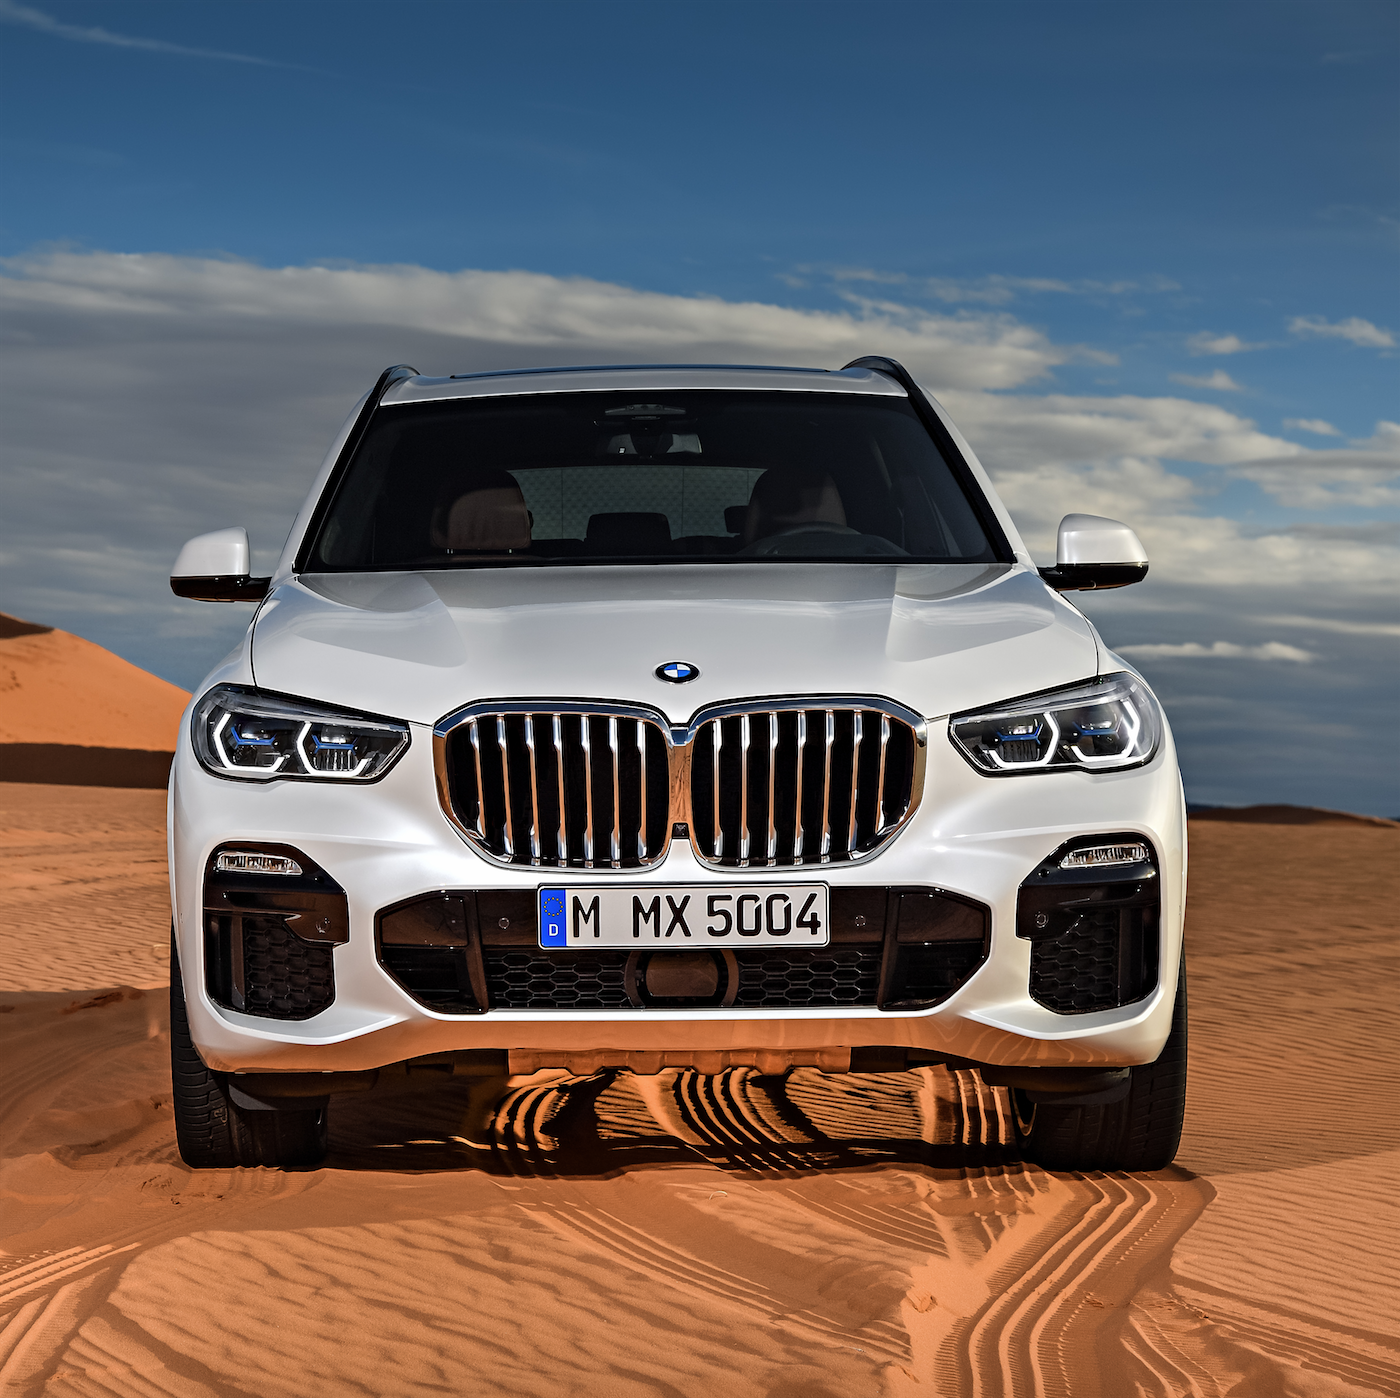 90 All New Bmw X5 2019 Price Usa First Drive Price Performance And Review Wallpaper with Bmw X5 2019 Price Usa First Drive Price Performance And Review